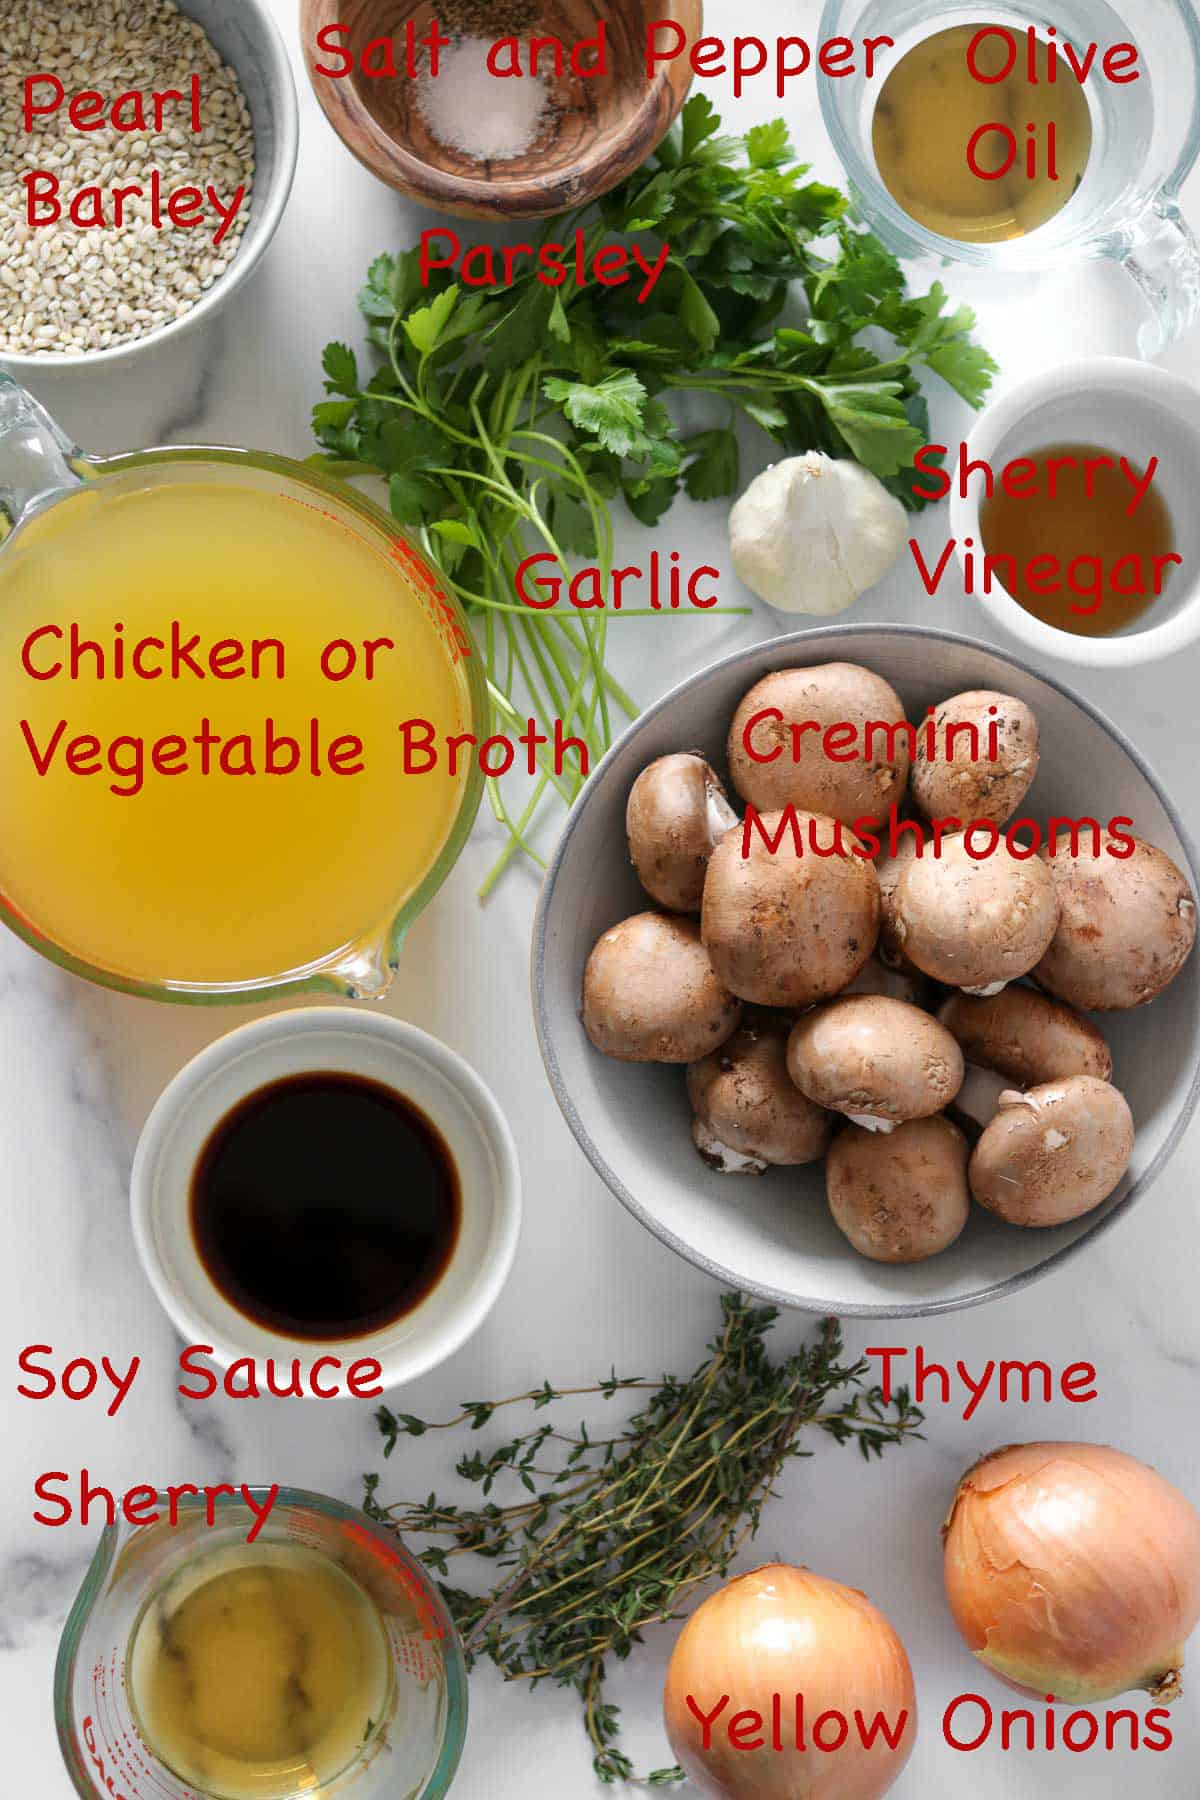 Labeled ingredients for Caramelized Onion, Mushroom and Barley Soup